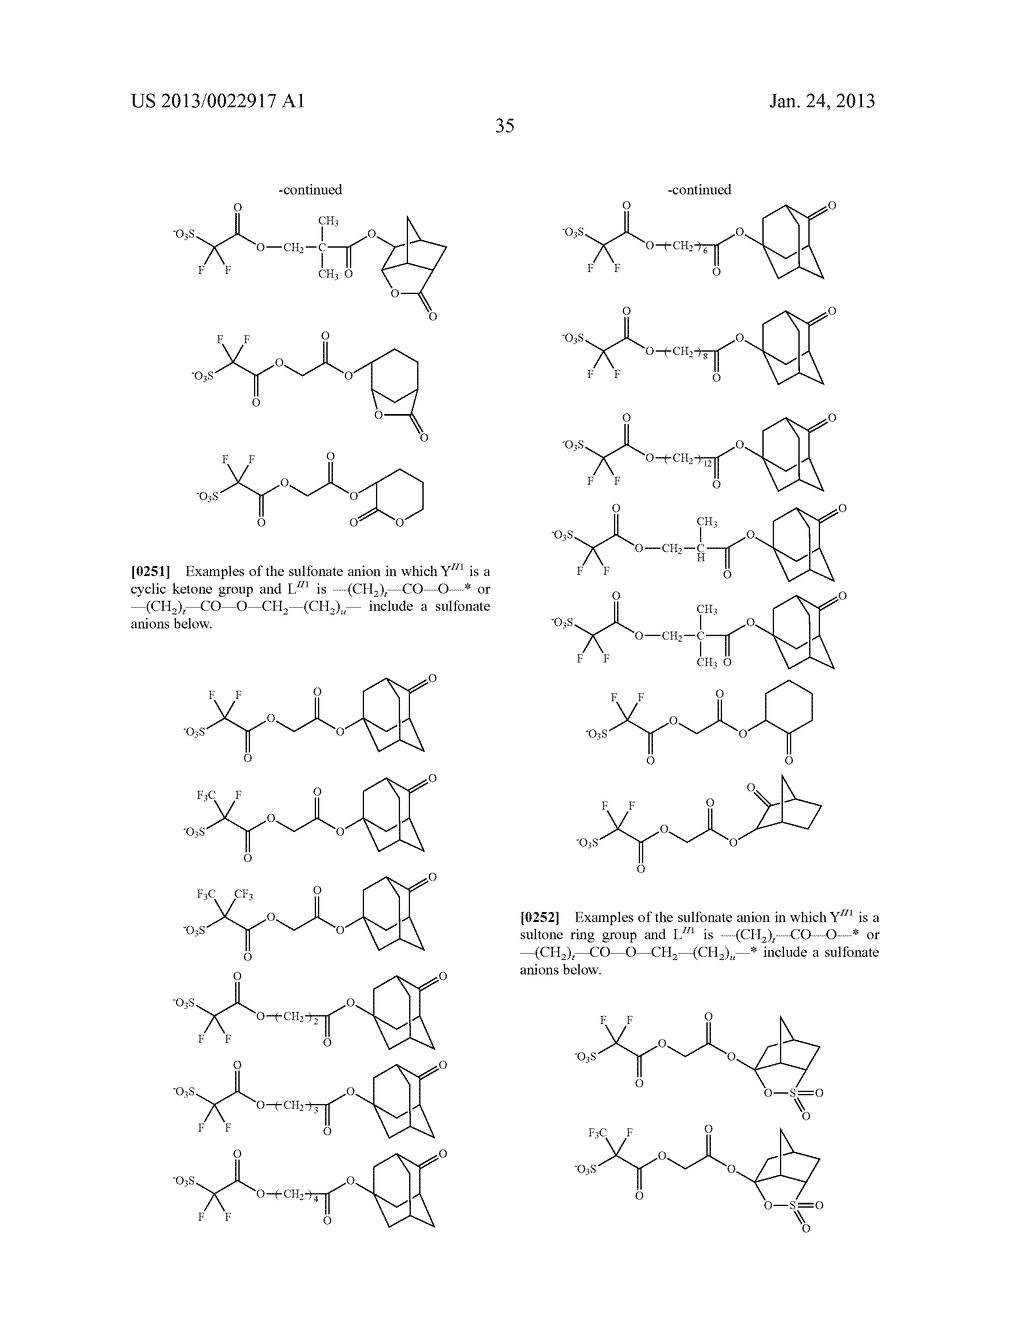 RESIST COMPOSITION AND METHOD FOR PRODUCING RESIST PATTERN - diagram, schematic, and image 36